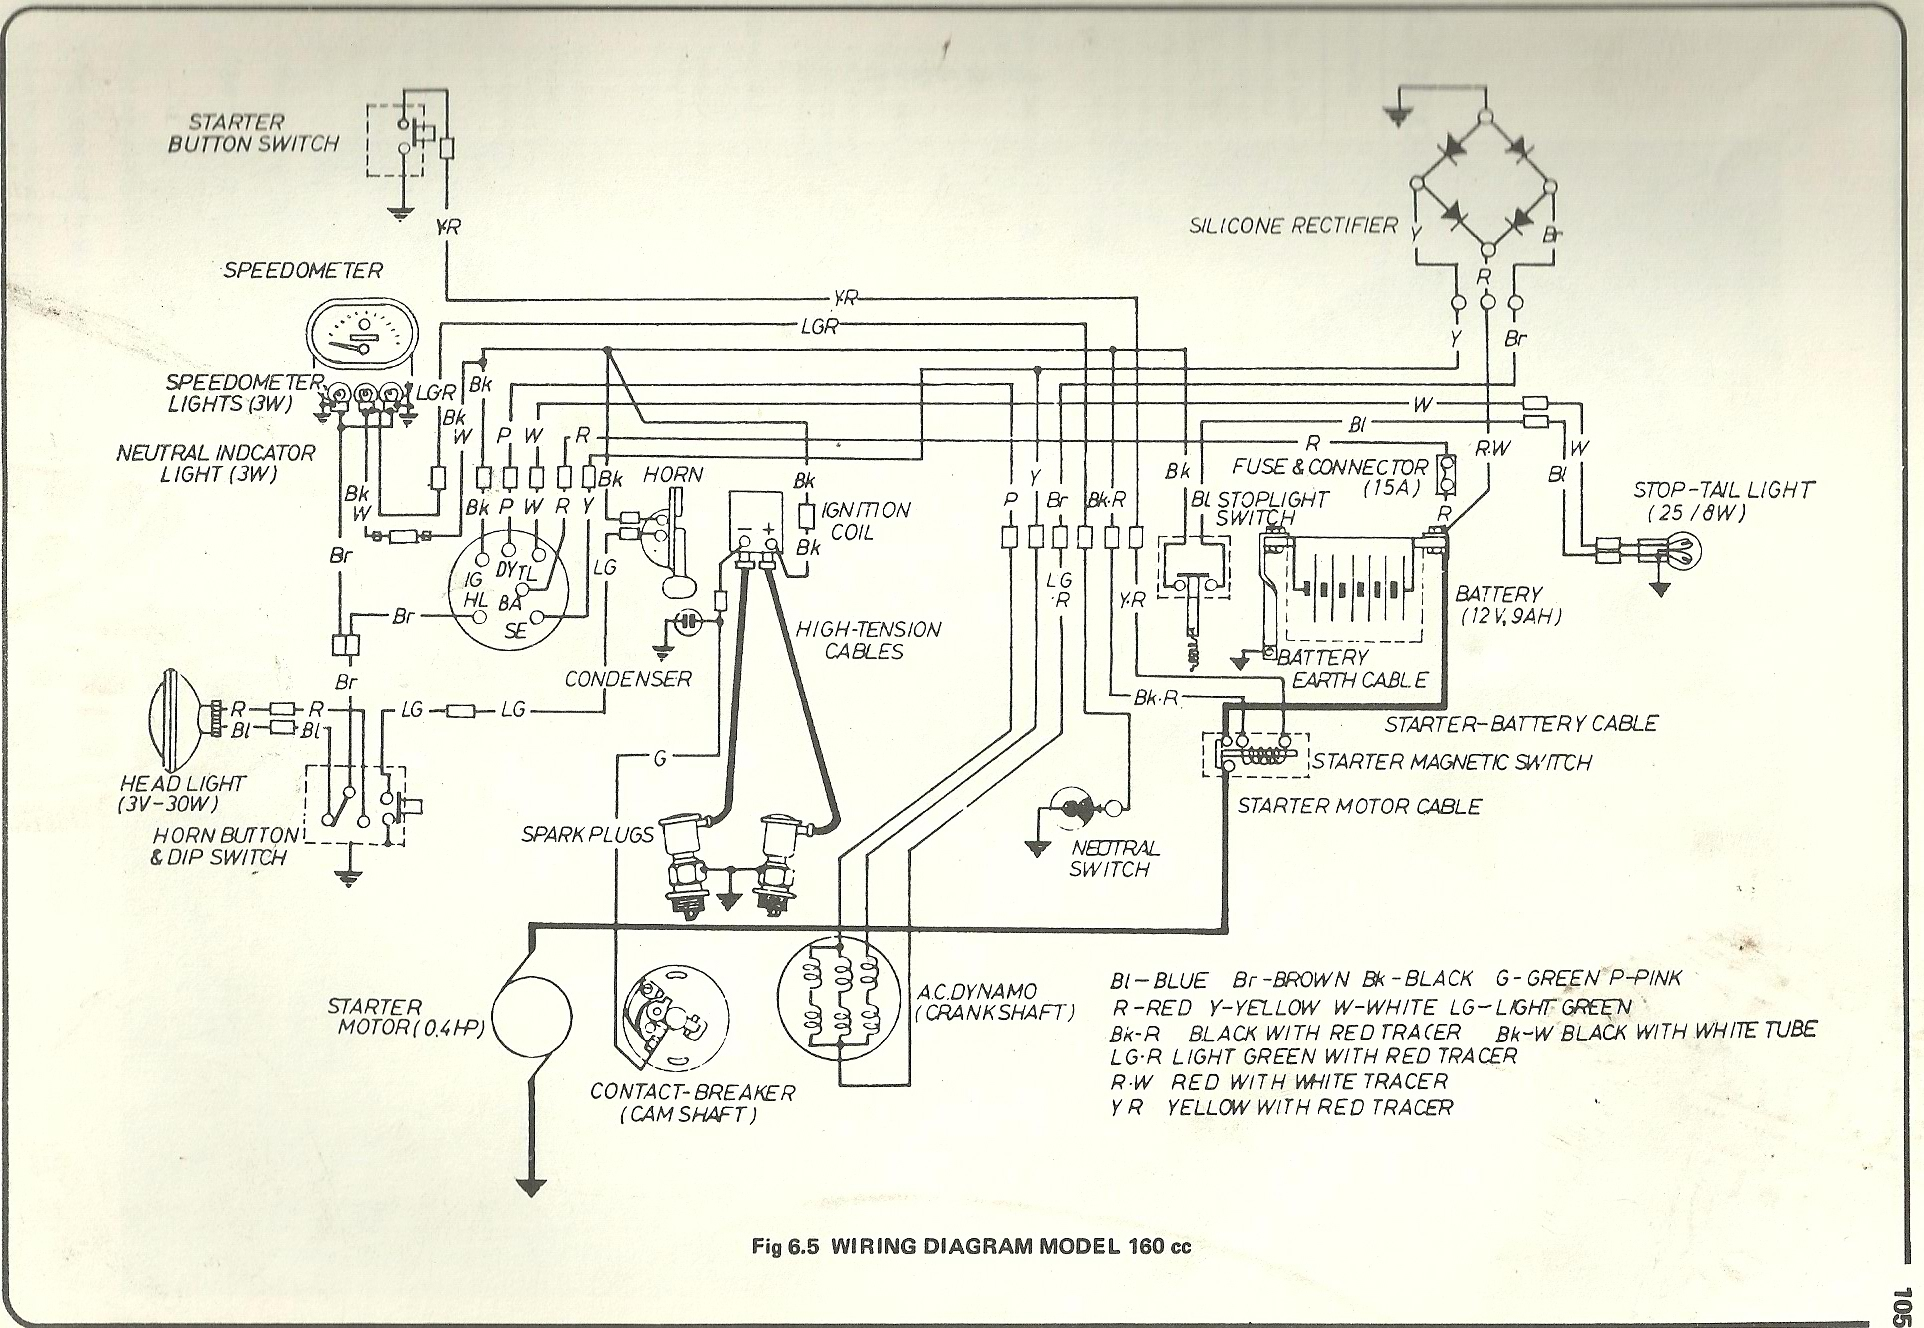 Cb350f Wiring Diagram Electrical Diagrams 1969 Cb350 Harness Trusted Xr250r